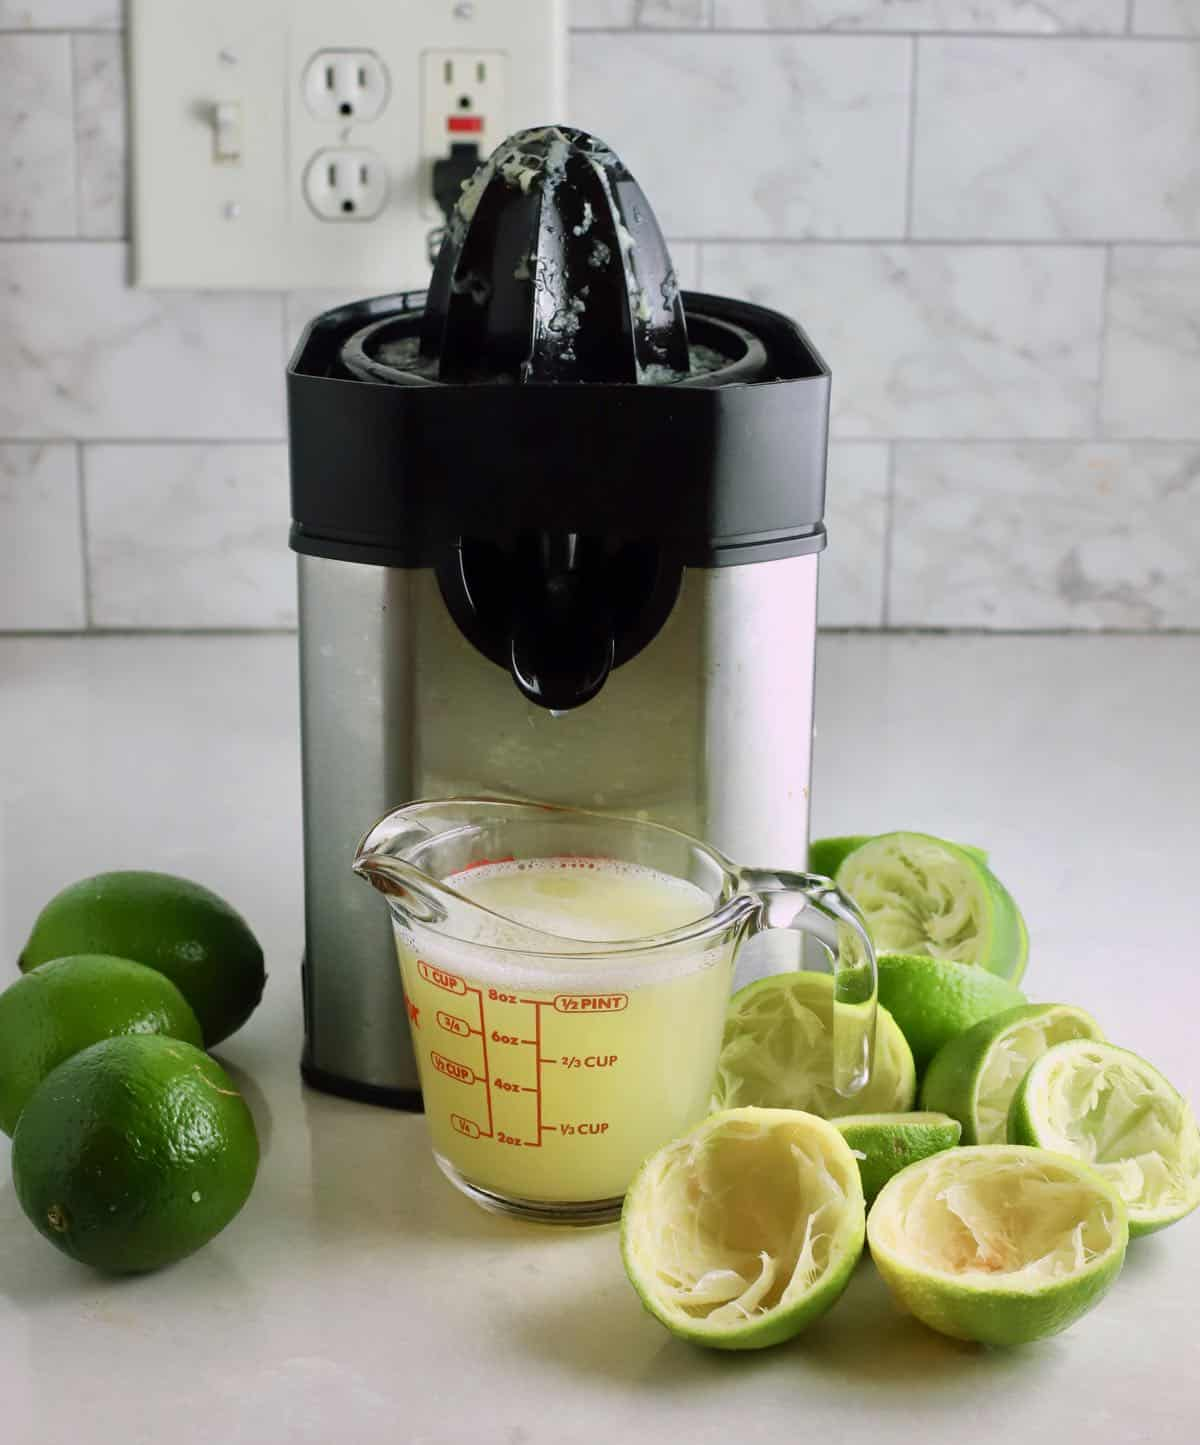 An electric juicer next to a measuring cup full of lime juice.